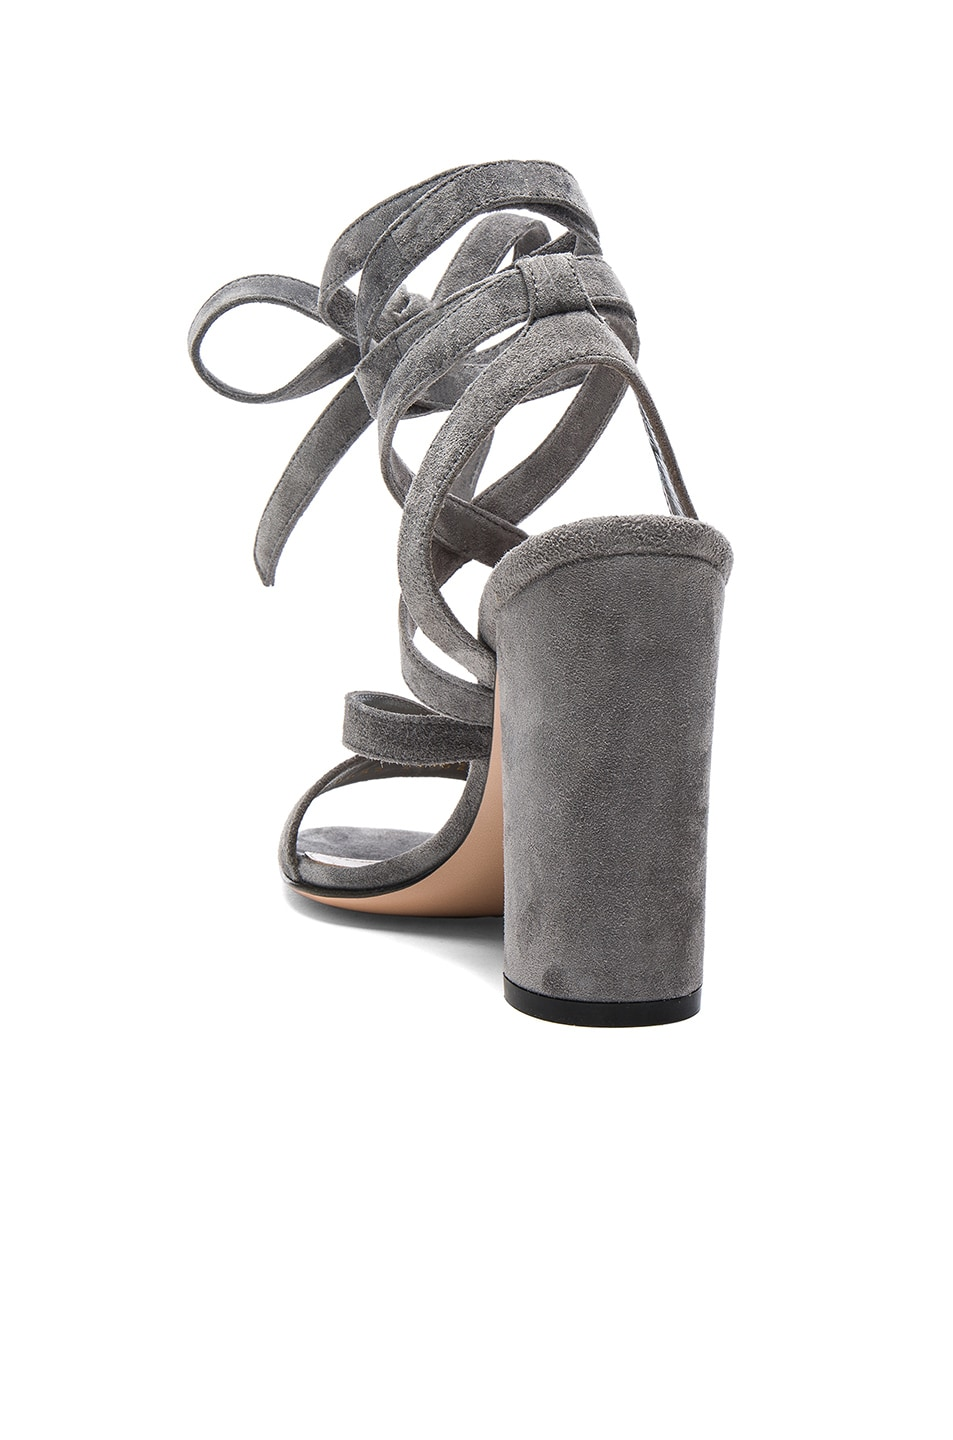 Image 3 of Gianvito Rossi Suede Janis High Sandals in Fumo